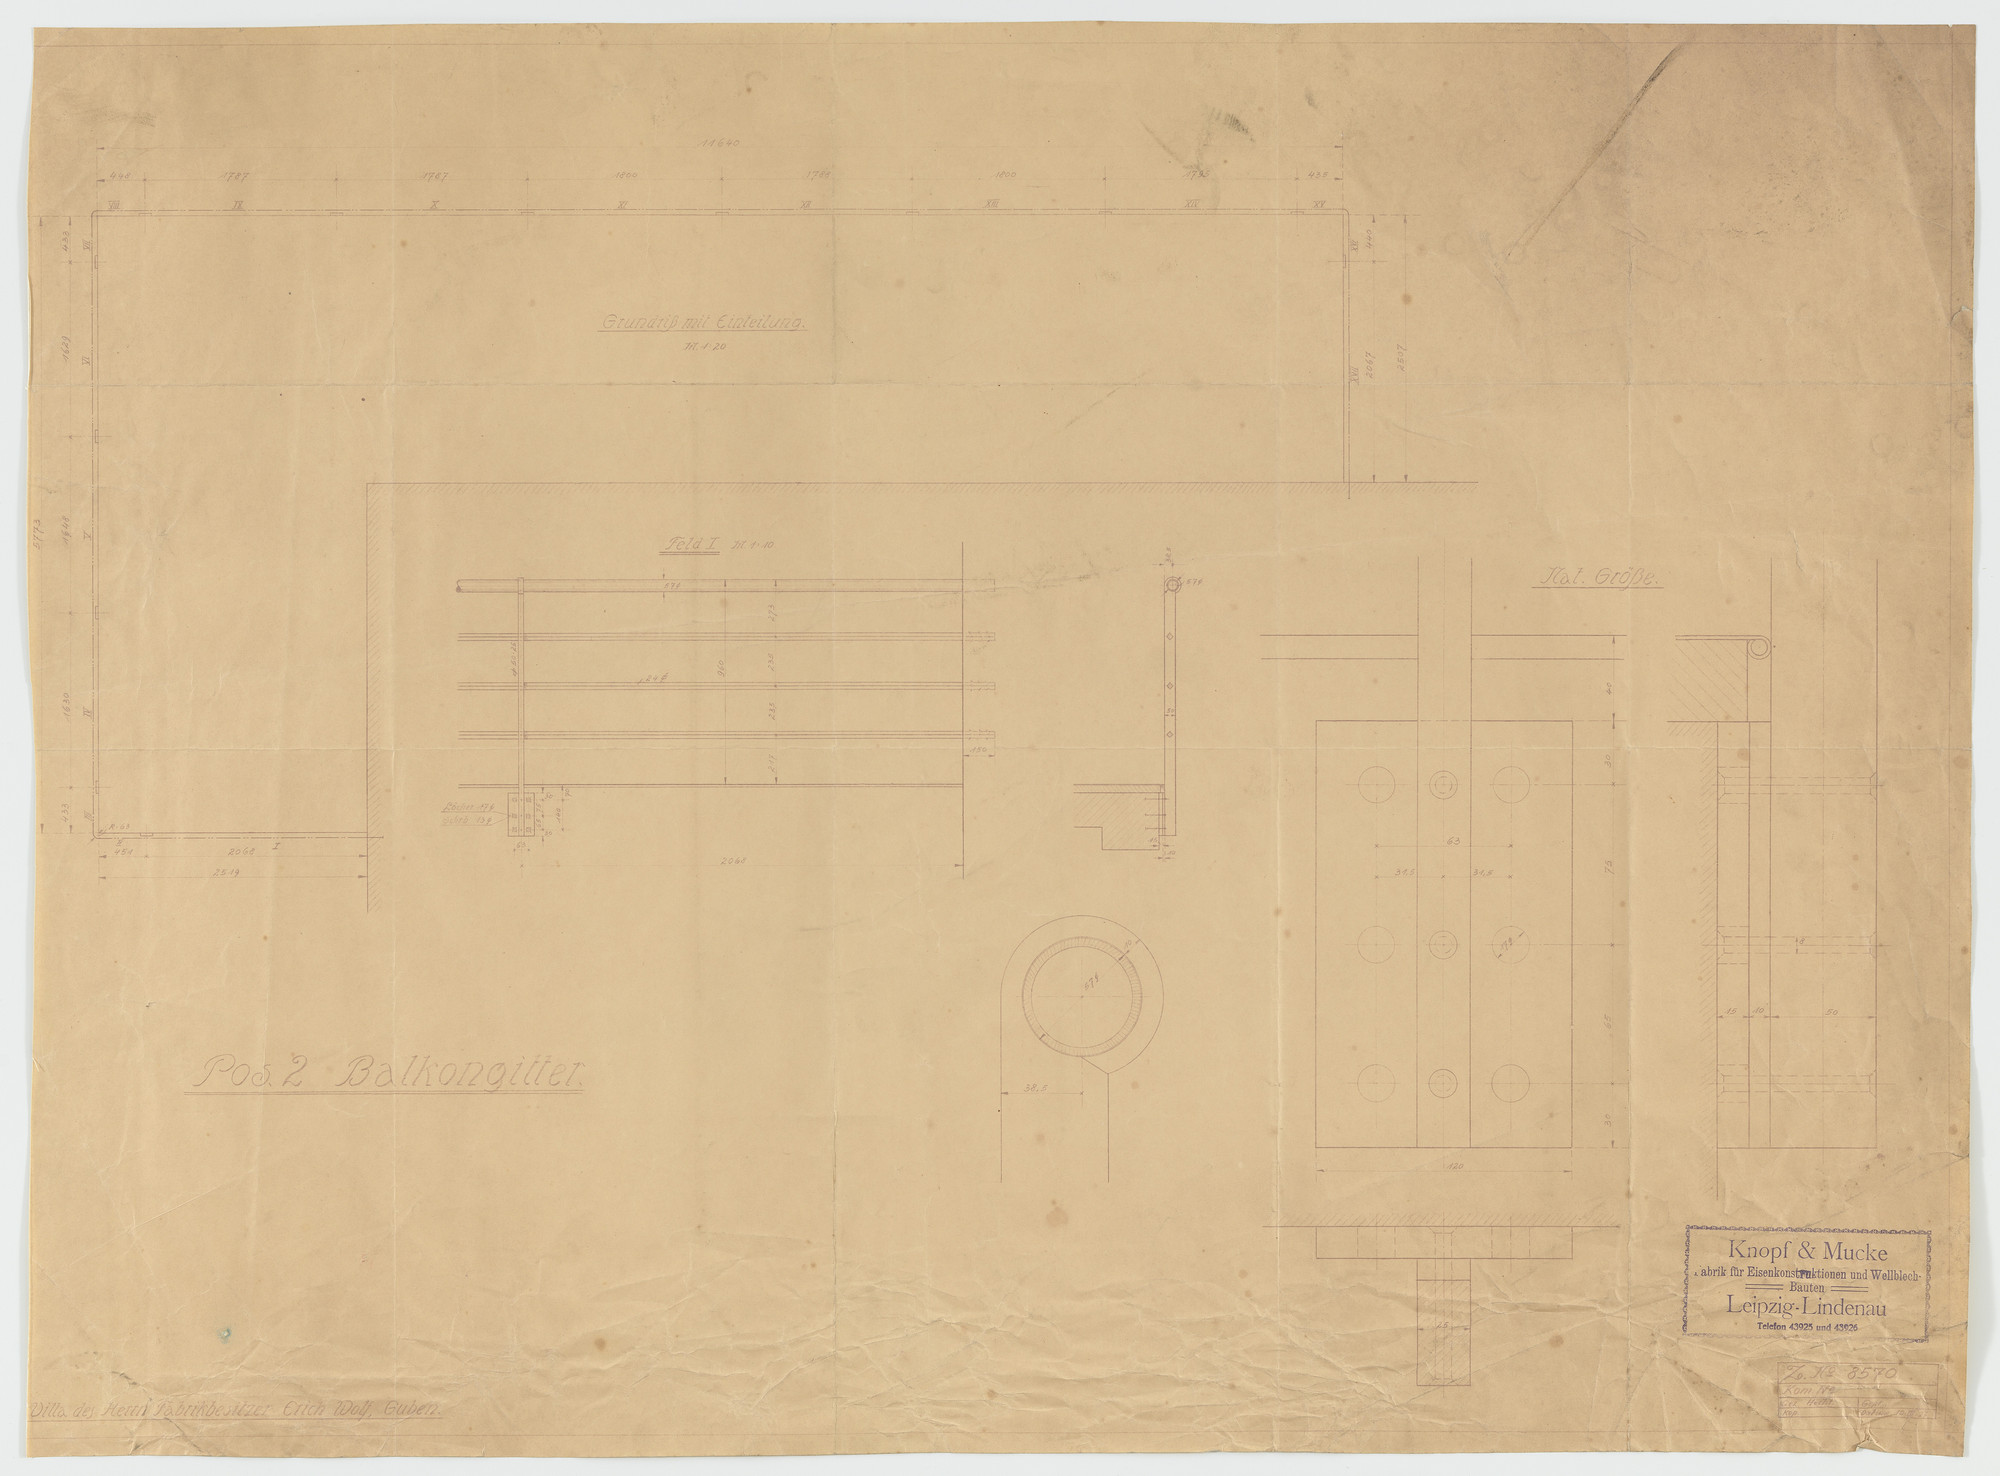 Ludwig Mies van der Rohe. Wolf House, Gubin, Poland (Sections and plan: balcony railing). 1925-1927